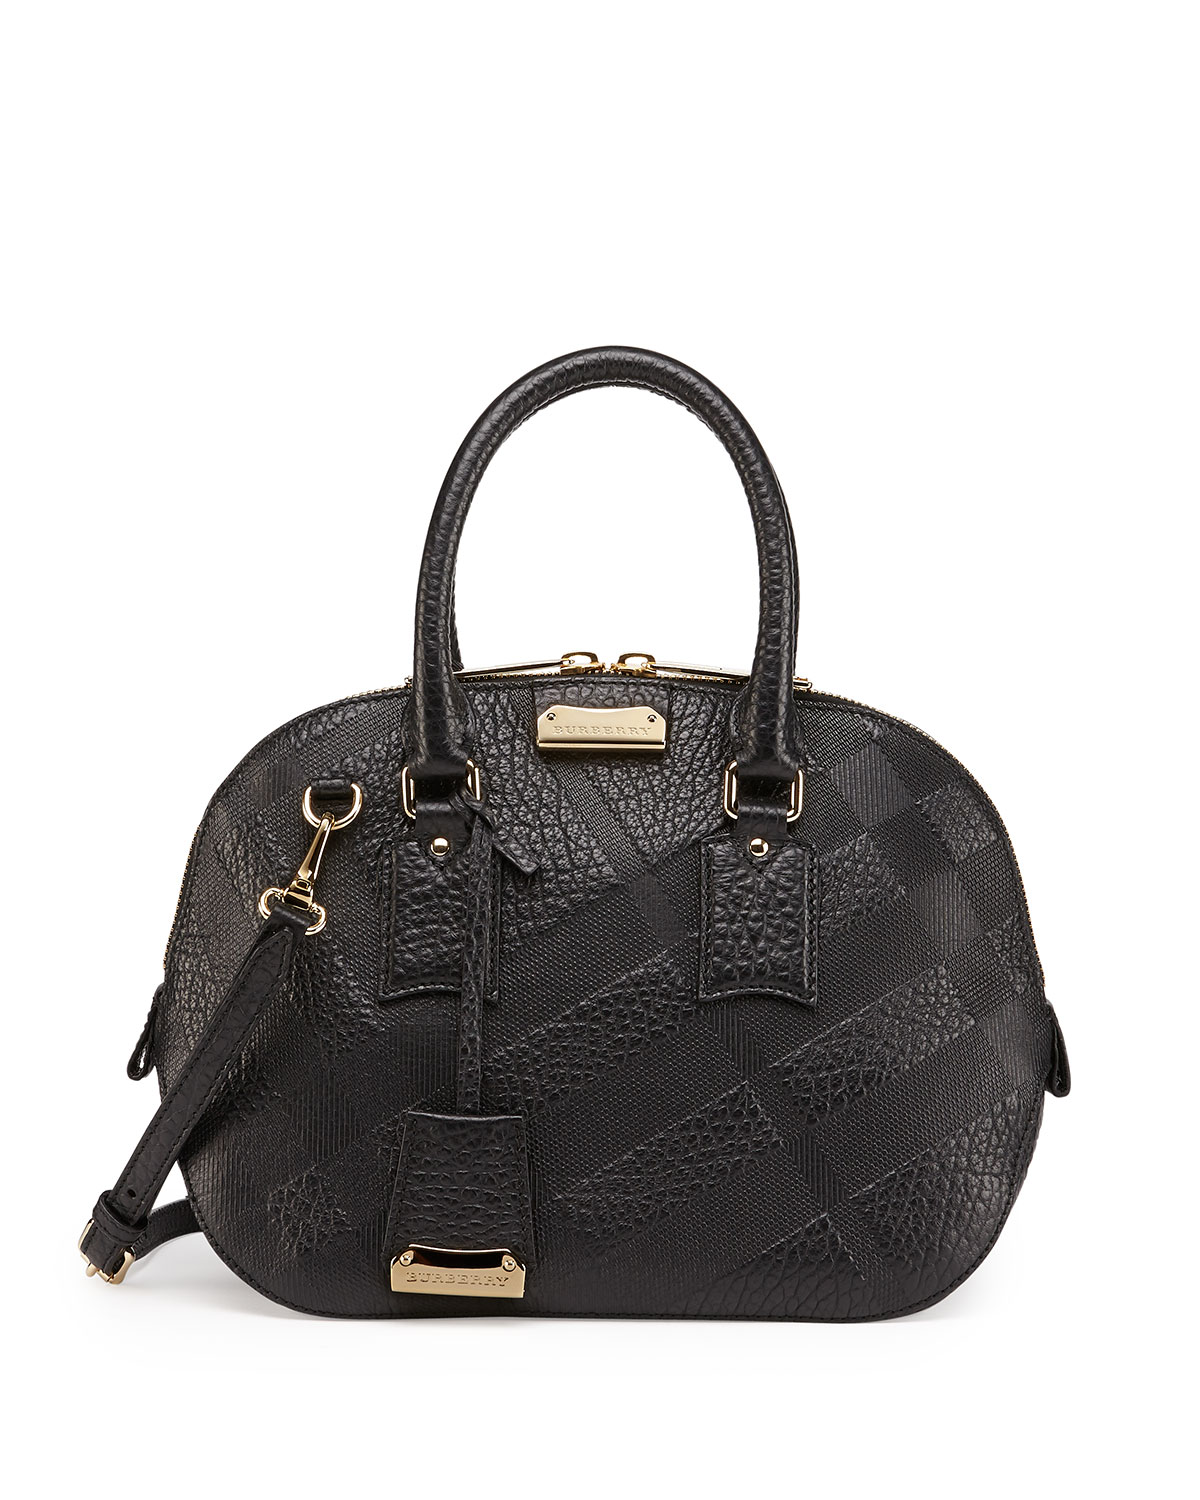 fc9aa5e0f82f Burberry Check-Embossed Leather Satchel Bag